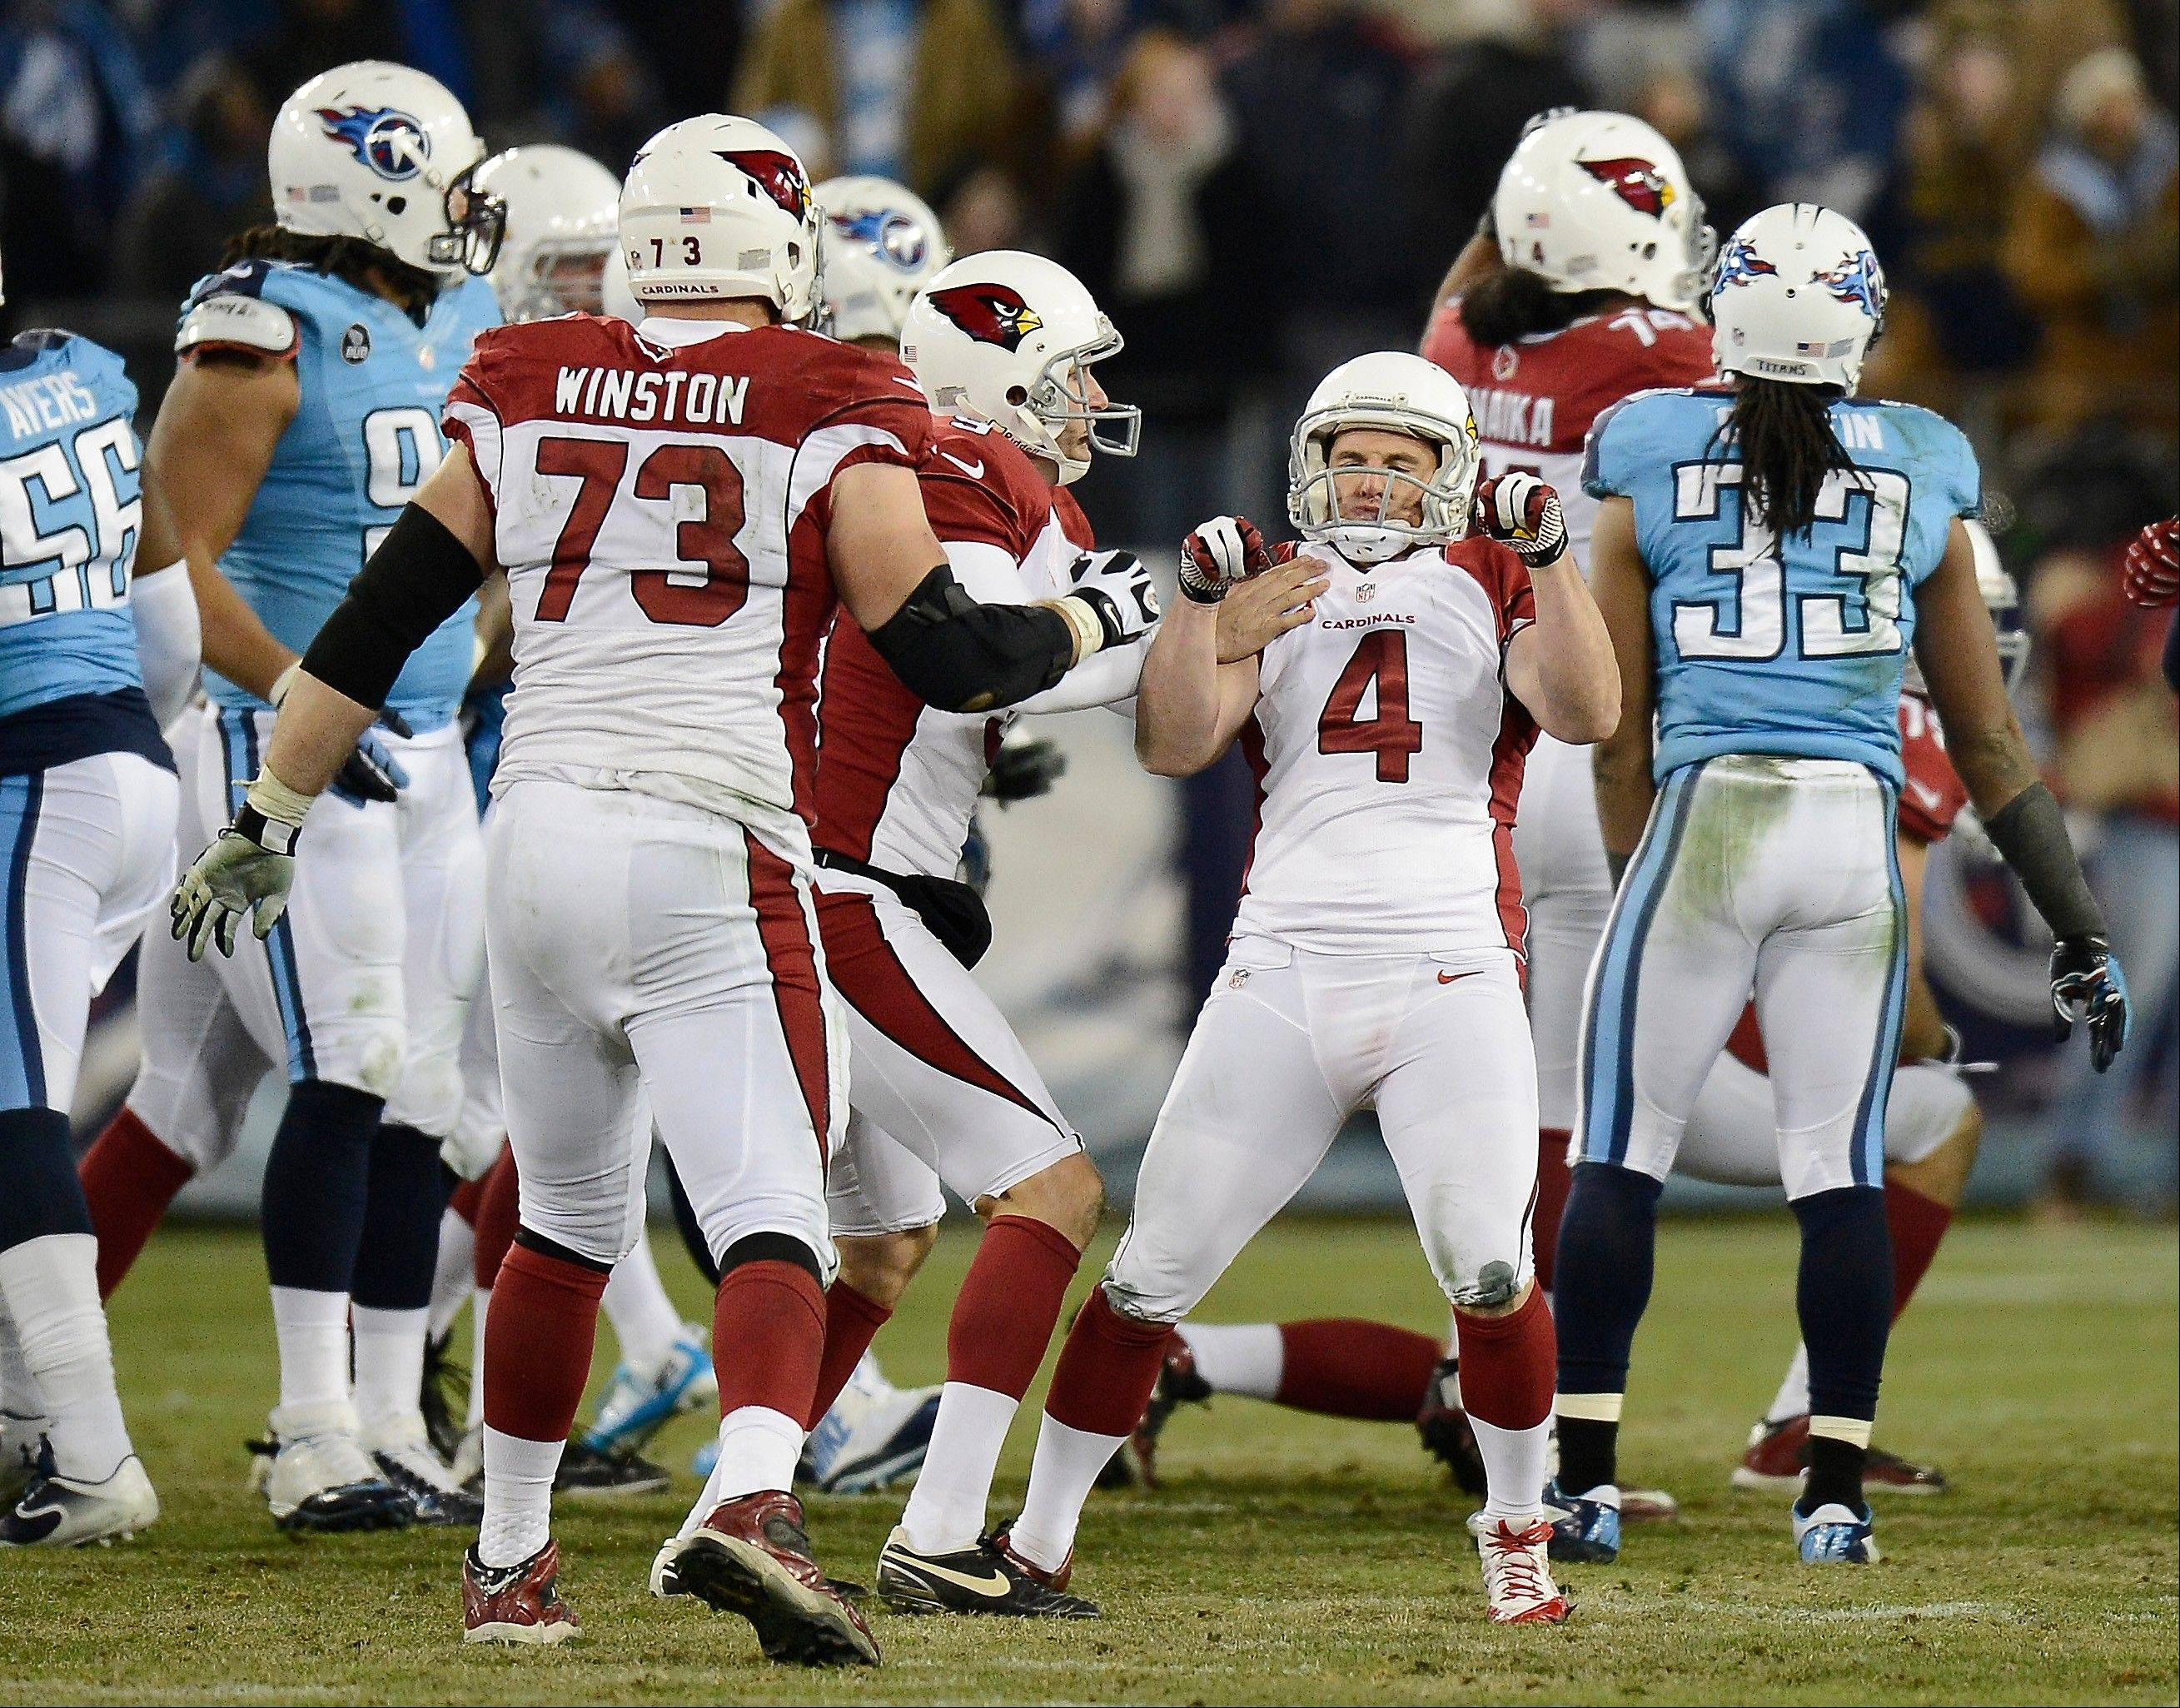 Arizona Cardinals kicker Jay Feely (4) celebrates after kicking a 41-yard field goal in overtime against the Tennessee Titans to give the Cardinals a 37-34 win in an NFL football game Sunday, Dec. 15, 2013, in Nashville, Tenn.